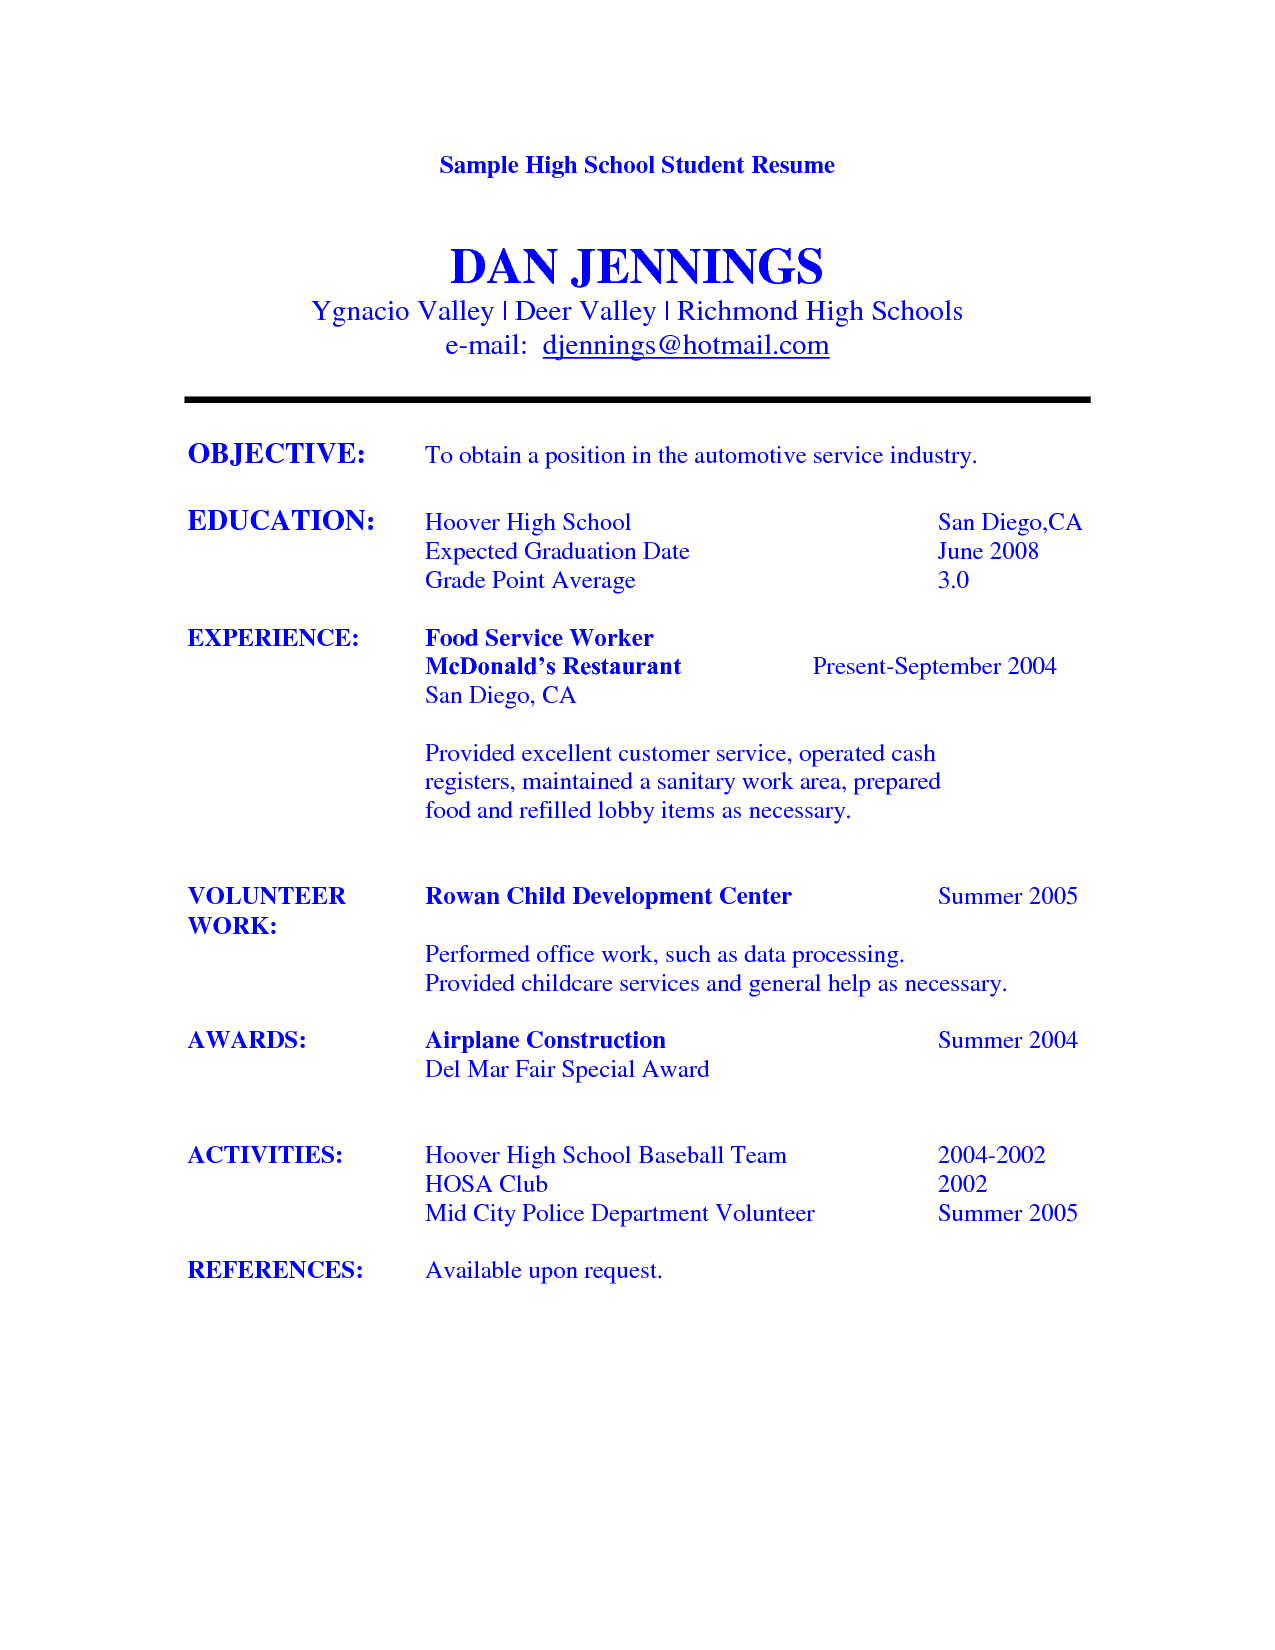 Resume Template For High School Student Resume Example For High School Student Sample Resumes  Httpwww